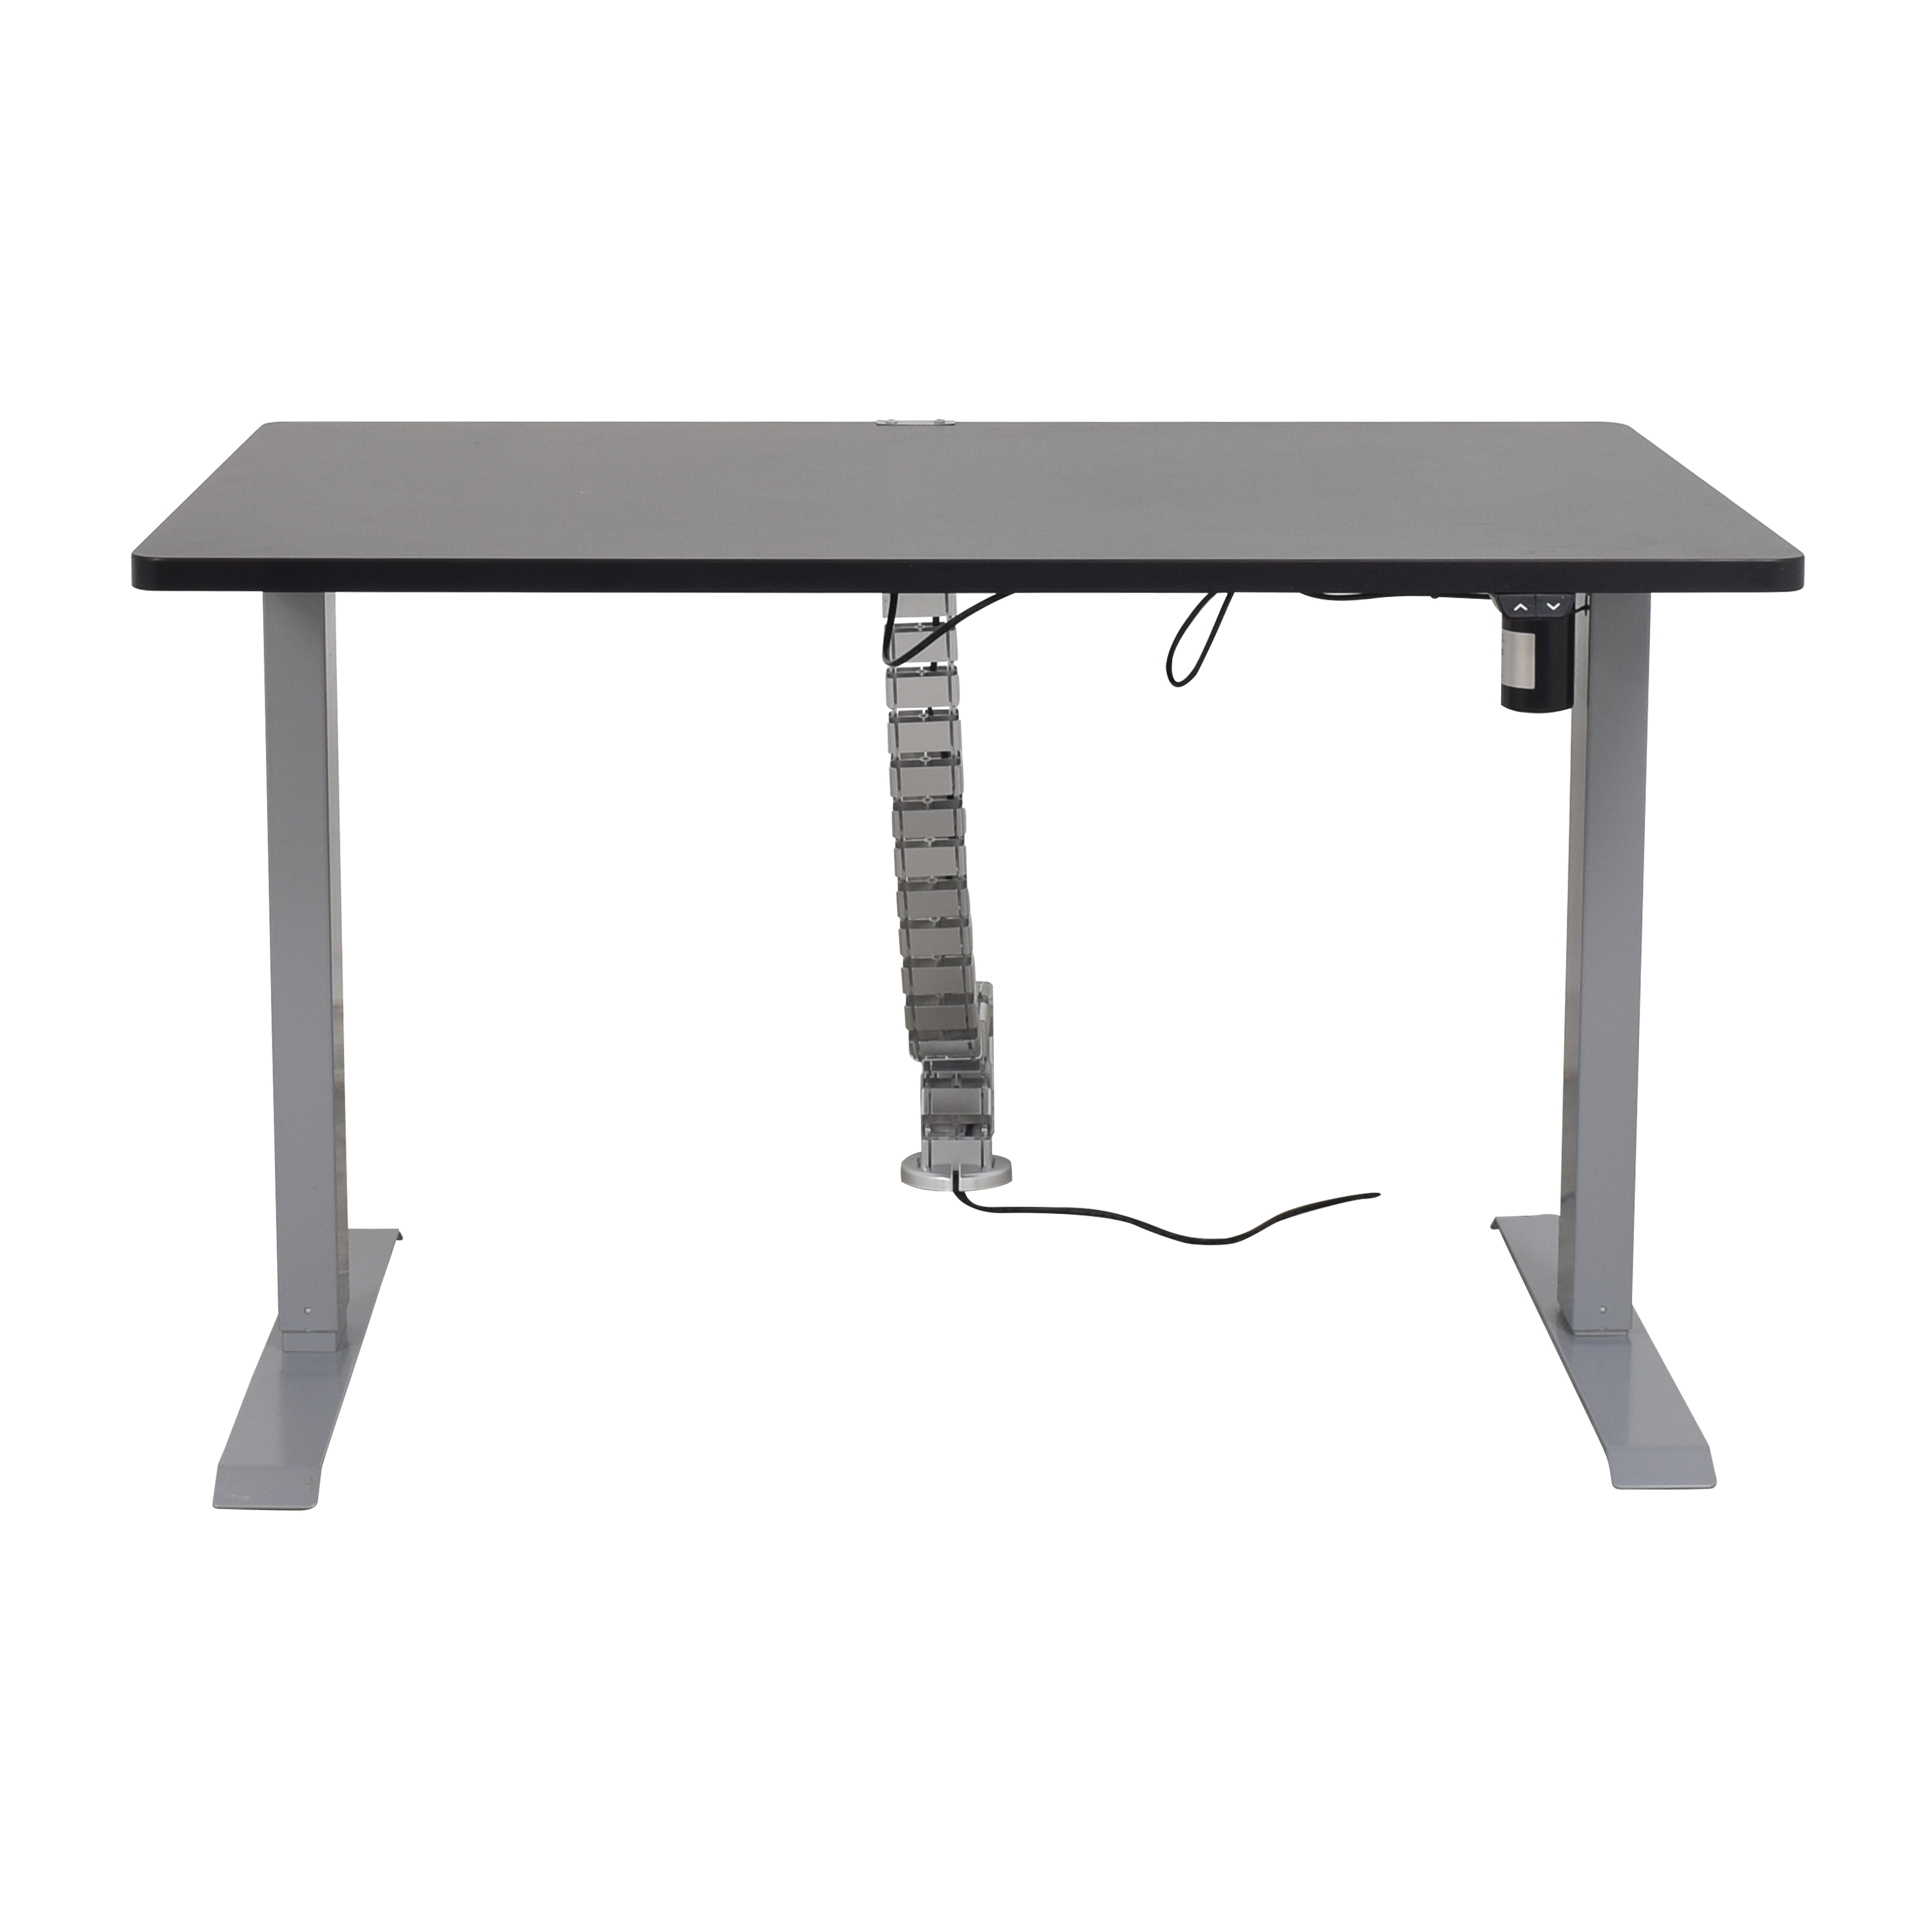 Flexispot Flexispot Electric Height Adjustable Standing Desk second hand